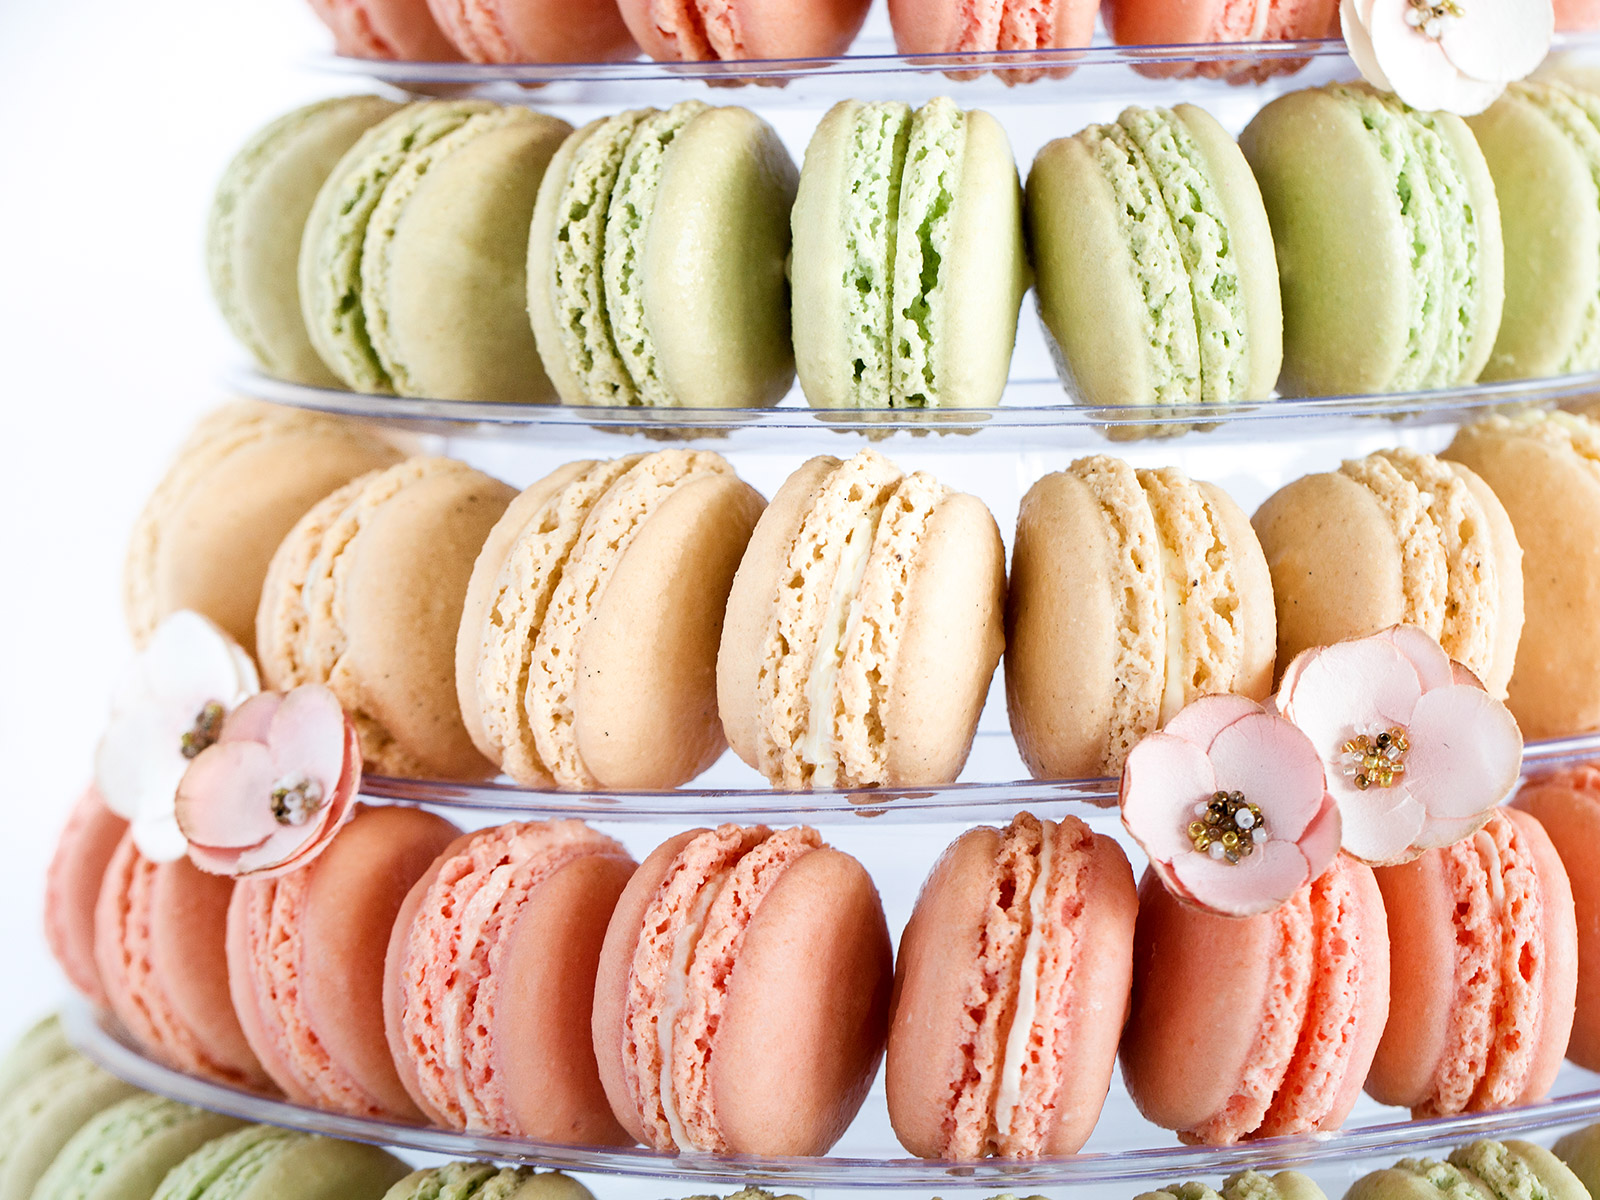 That Cute New Macaron Shop Near You Might Actually Be a Franchise (Sorry)